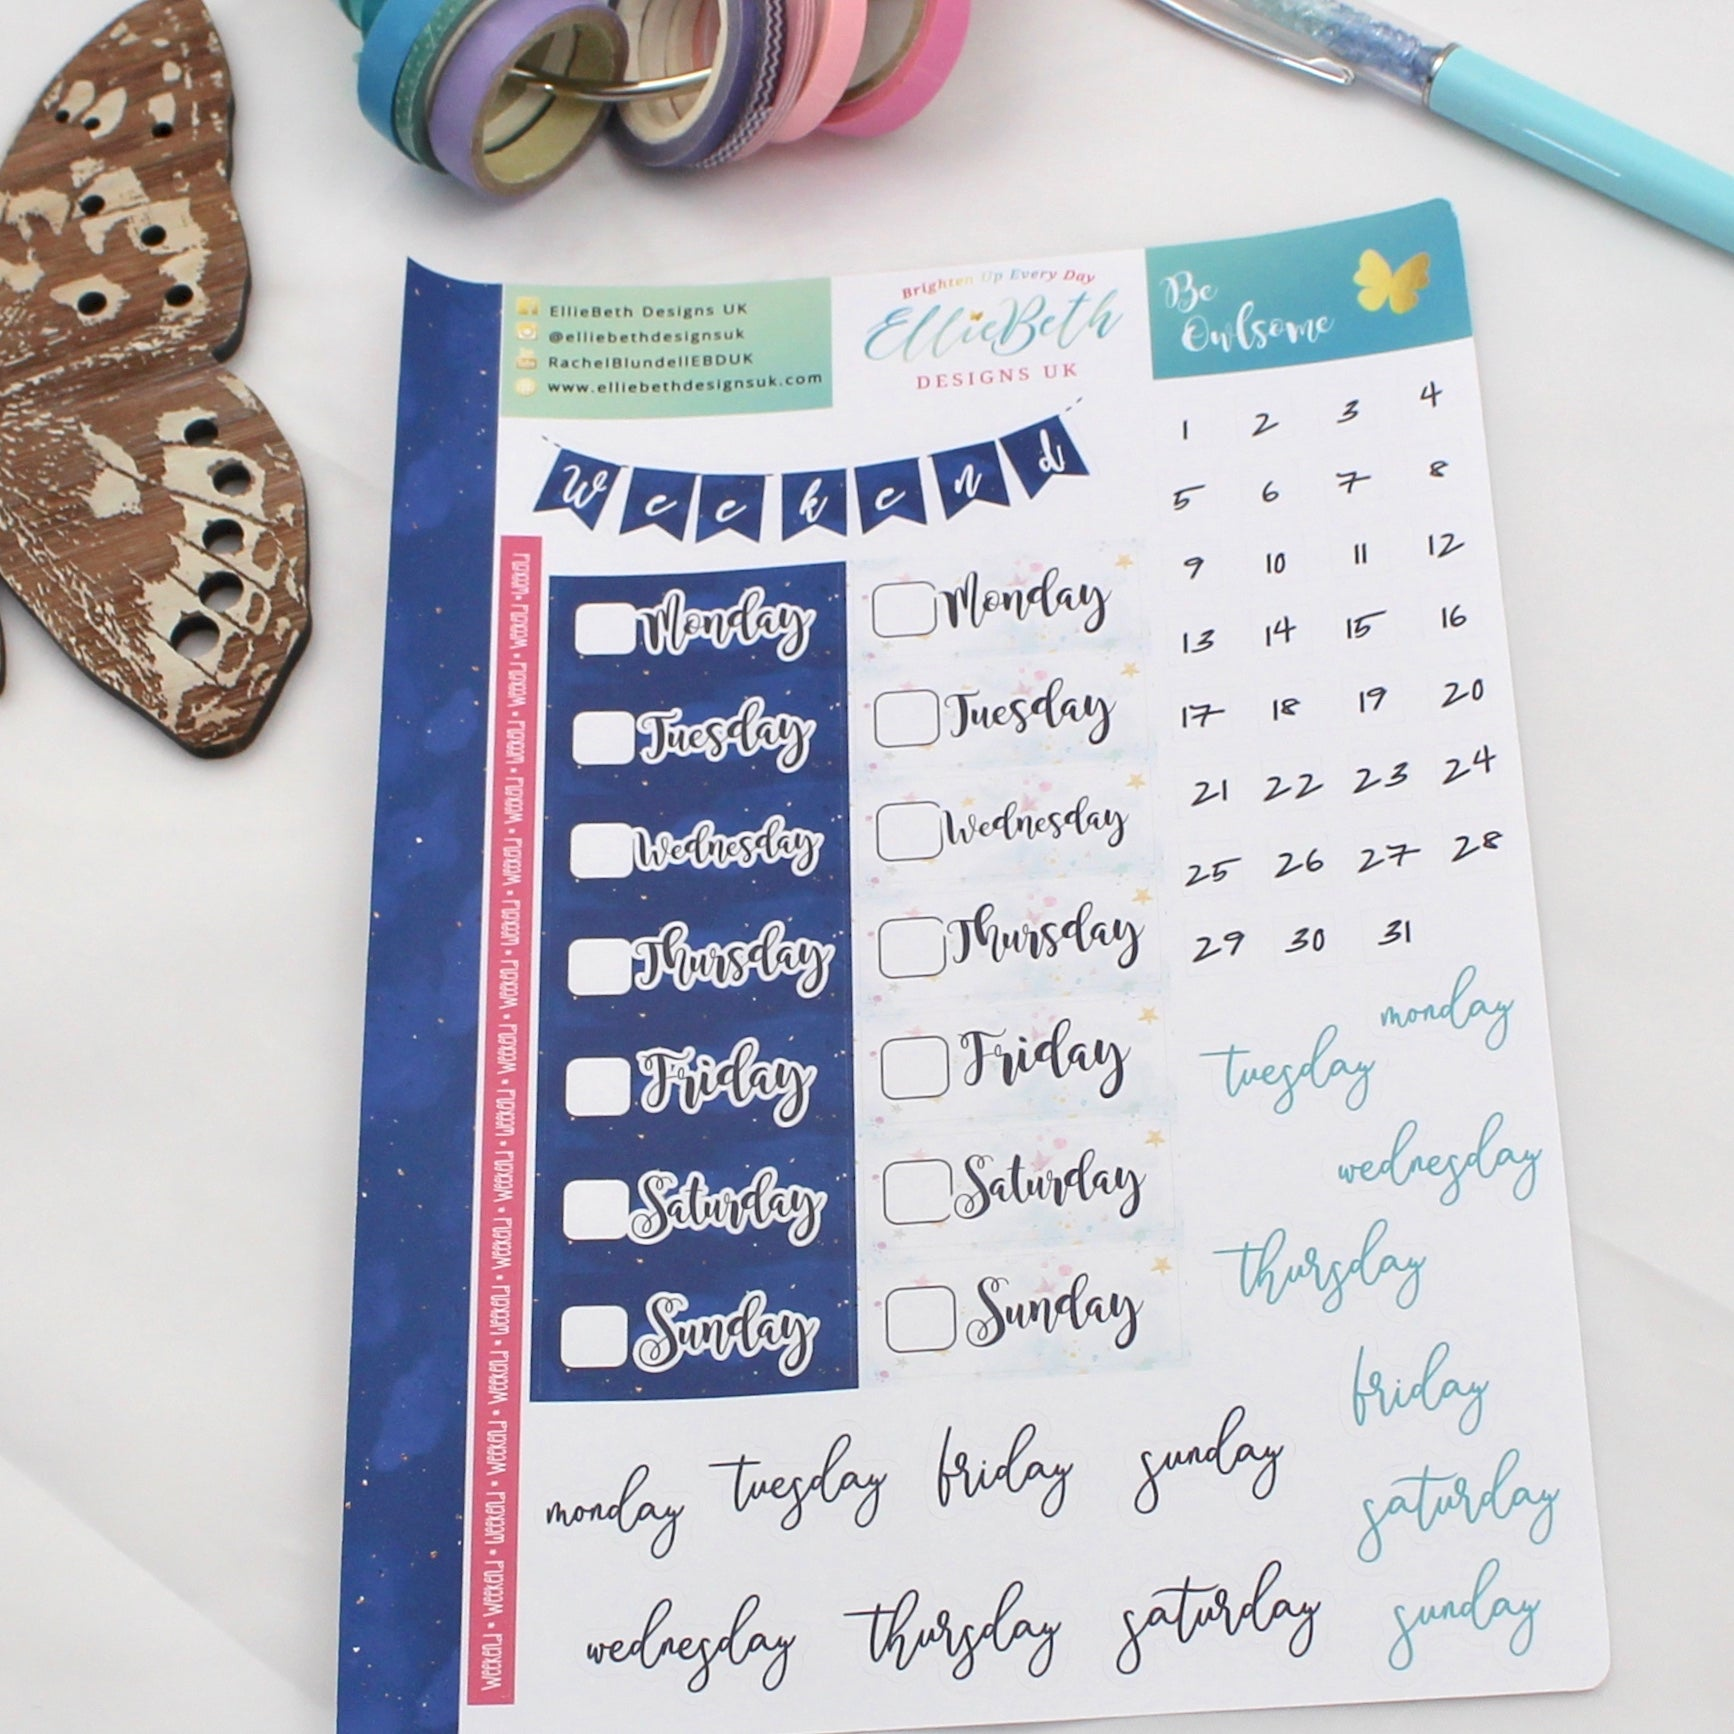 'Be Owlsome' - Days and Dates -  A5 binder ready planner stickers